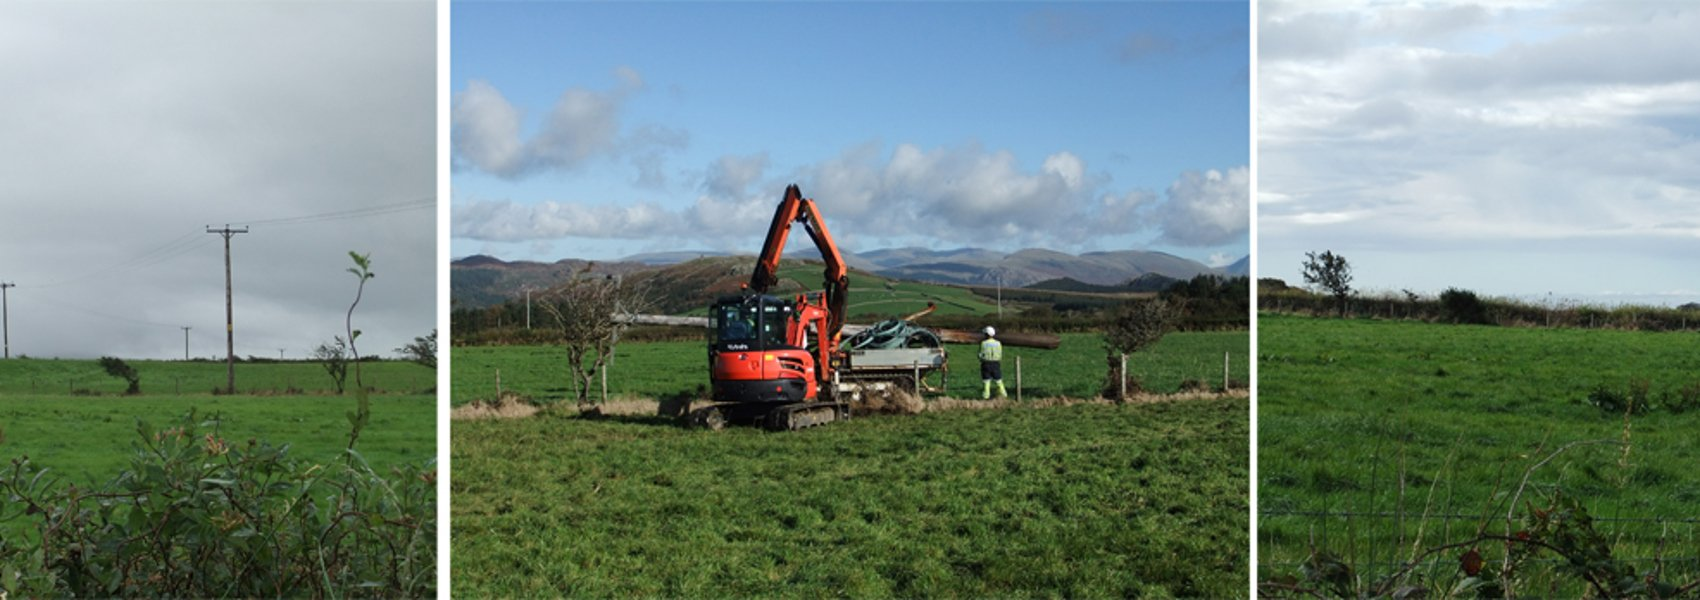 Power Lines Undergrounded at Corney Fell